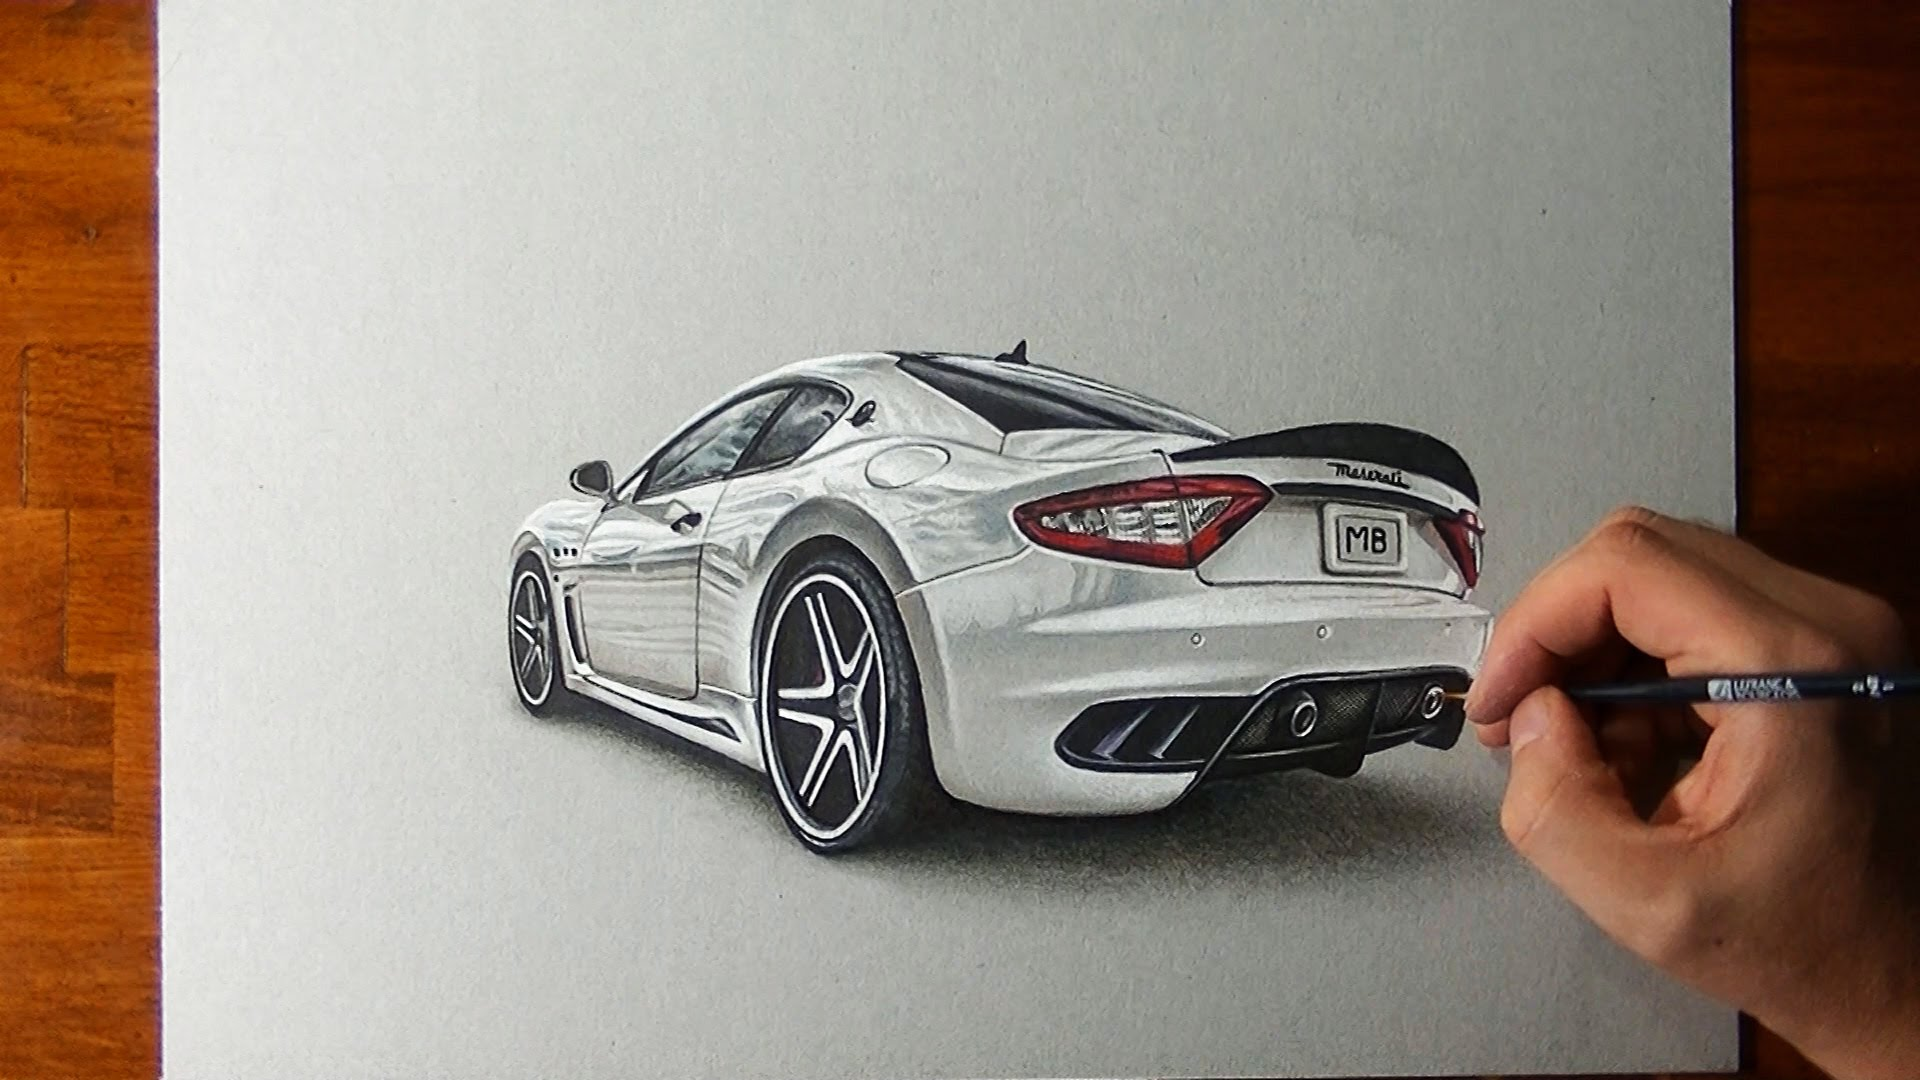 Drawn vehicle amazing car YouTube Granturismo Drawing Maserati Amazing